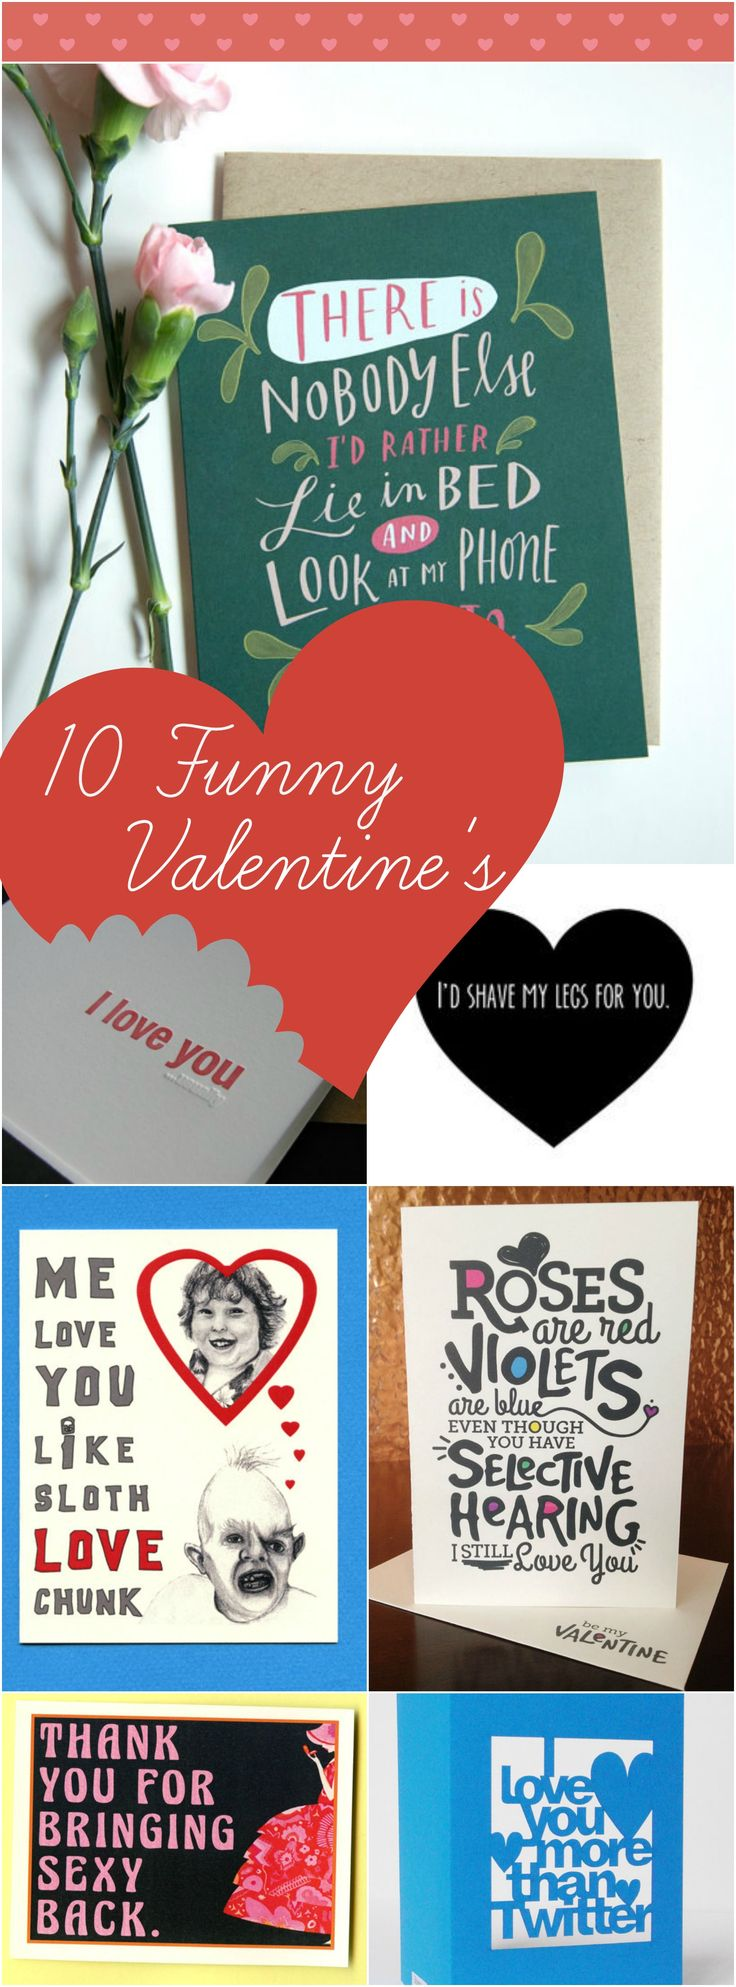 valentines day poems - 10 #funny messages and #quotes for your loved ones! http://www.mumsdays.com/best-valentines-day-poems/